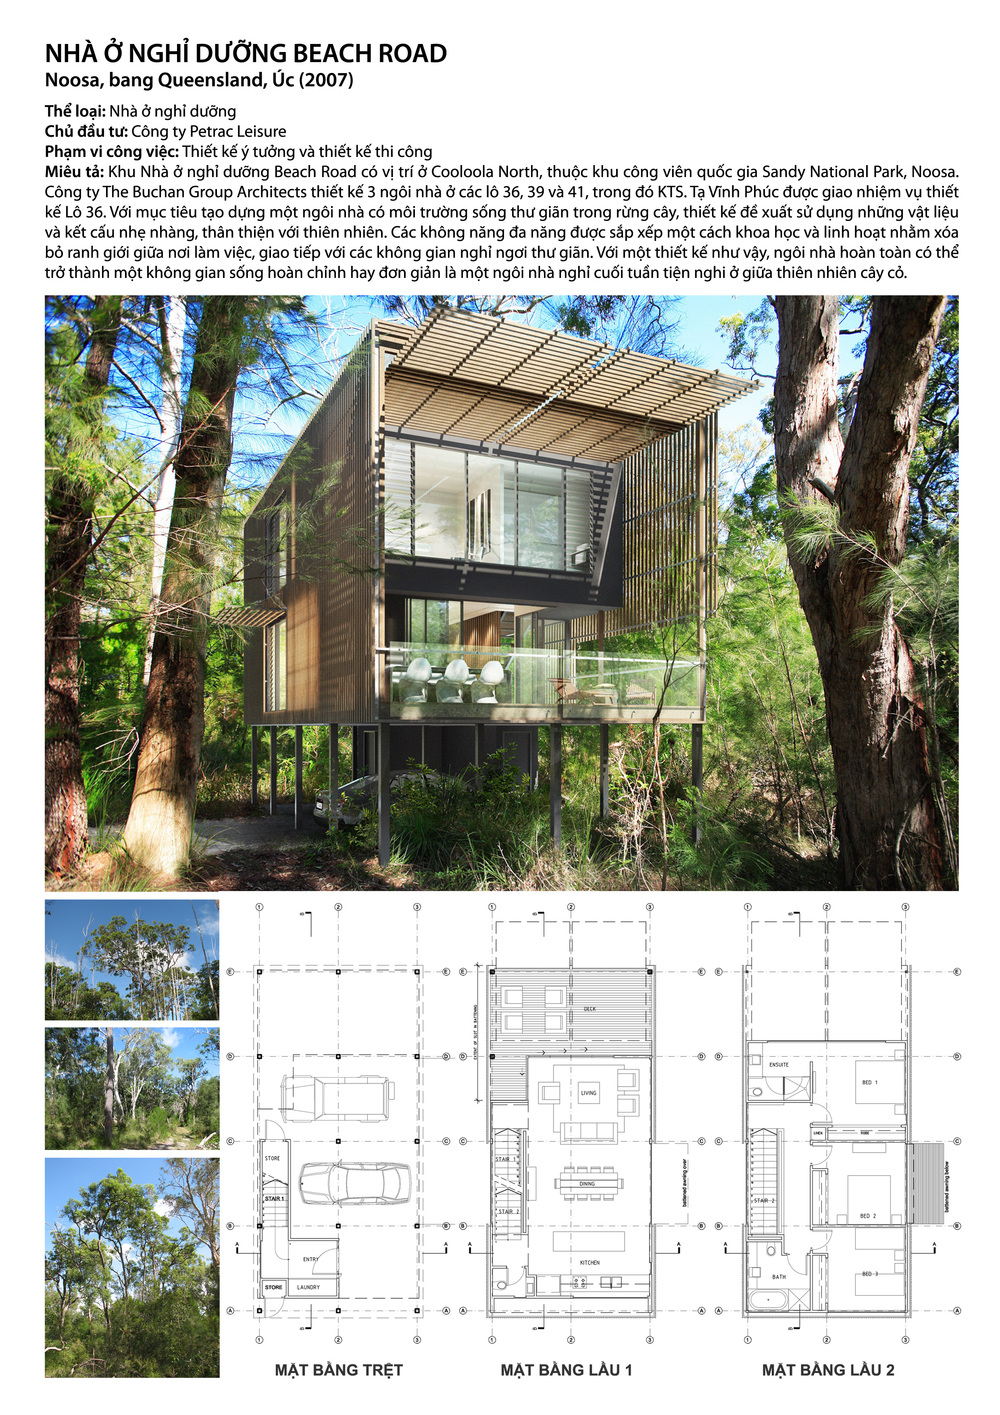 P+P Architects & Consultants - The Buchan Group Architects